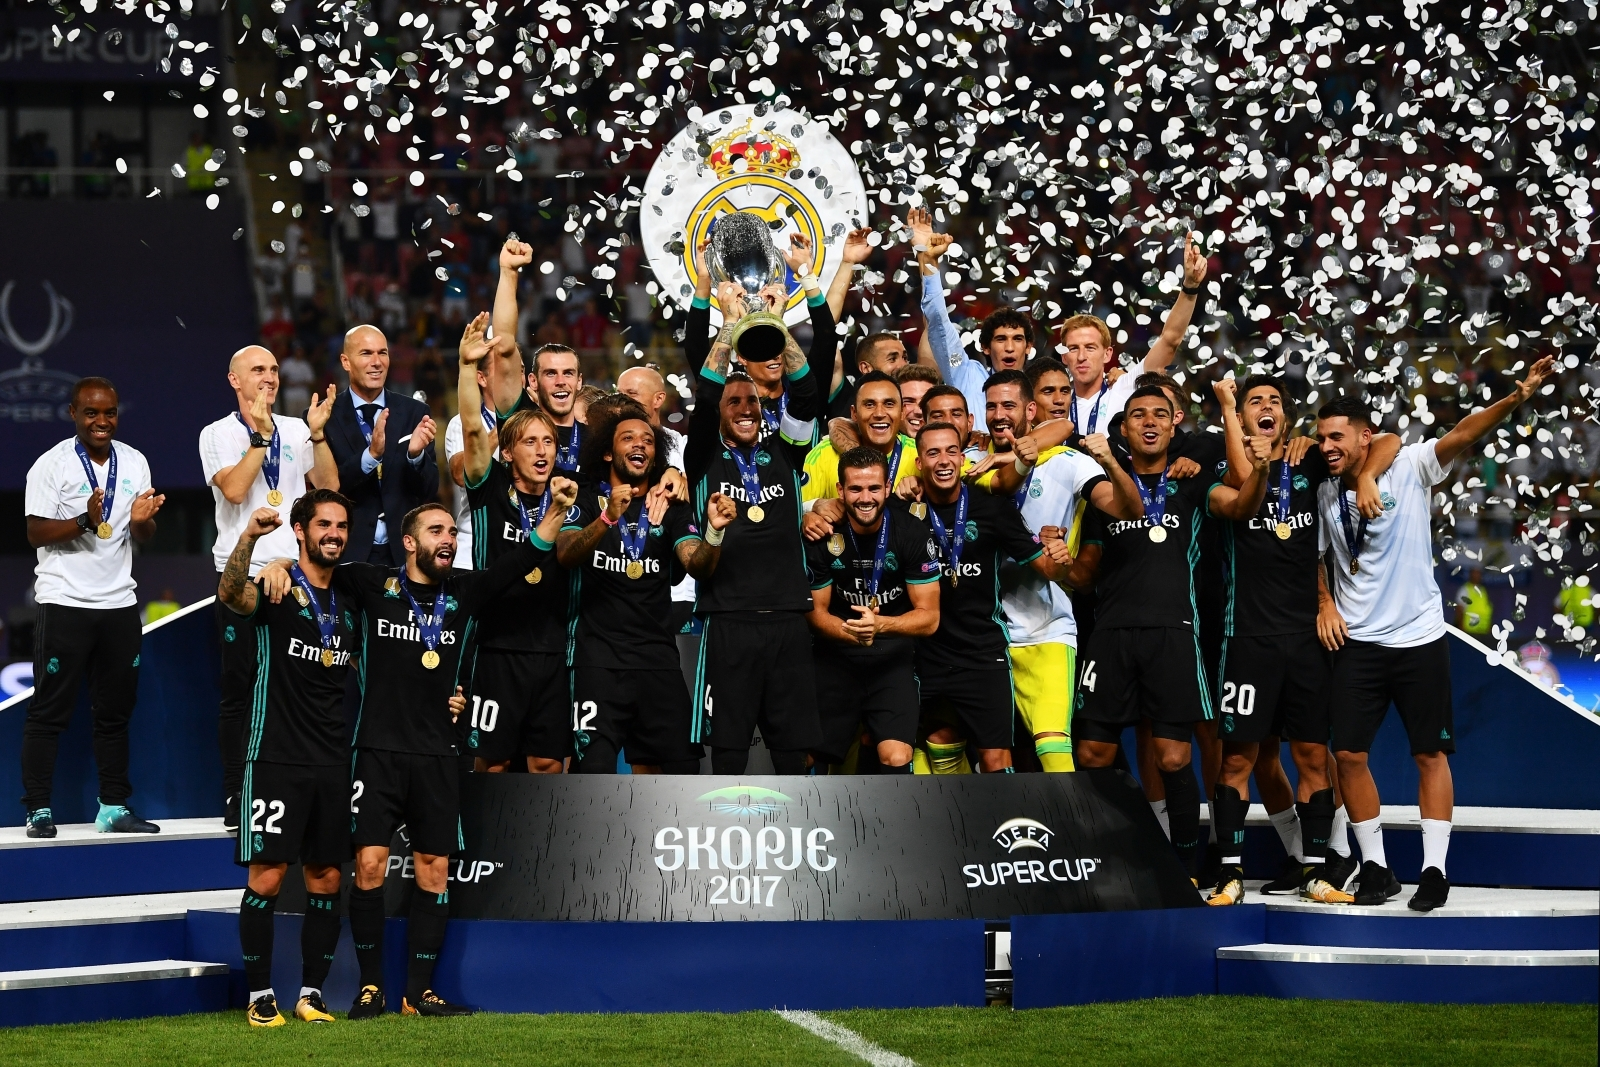 Super Cup win  Real Manchester after Madrid outclassing